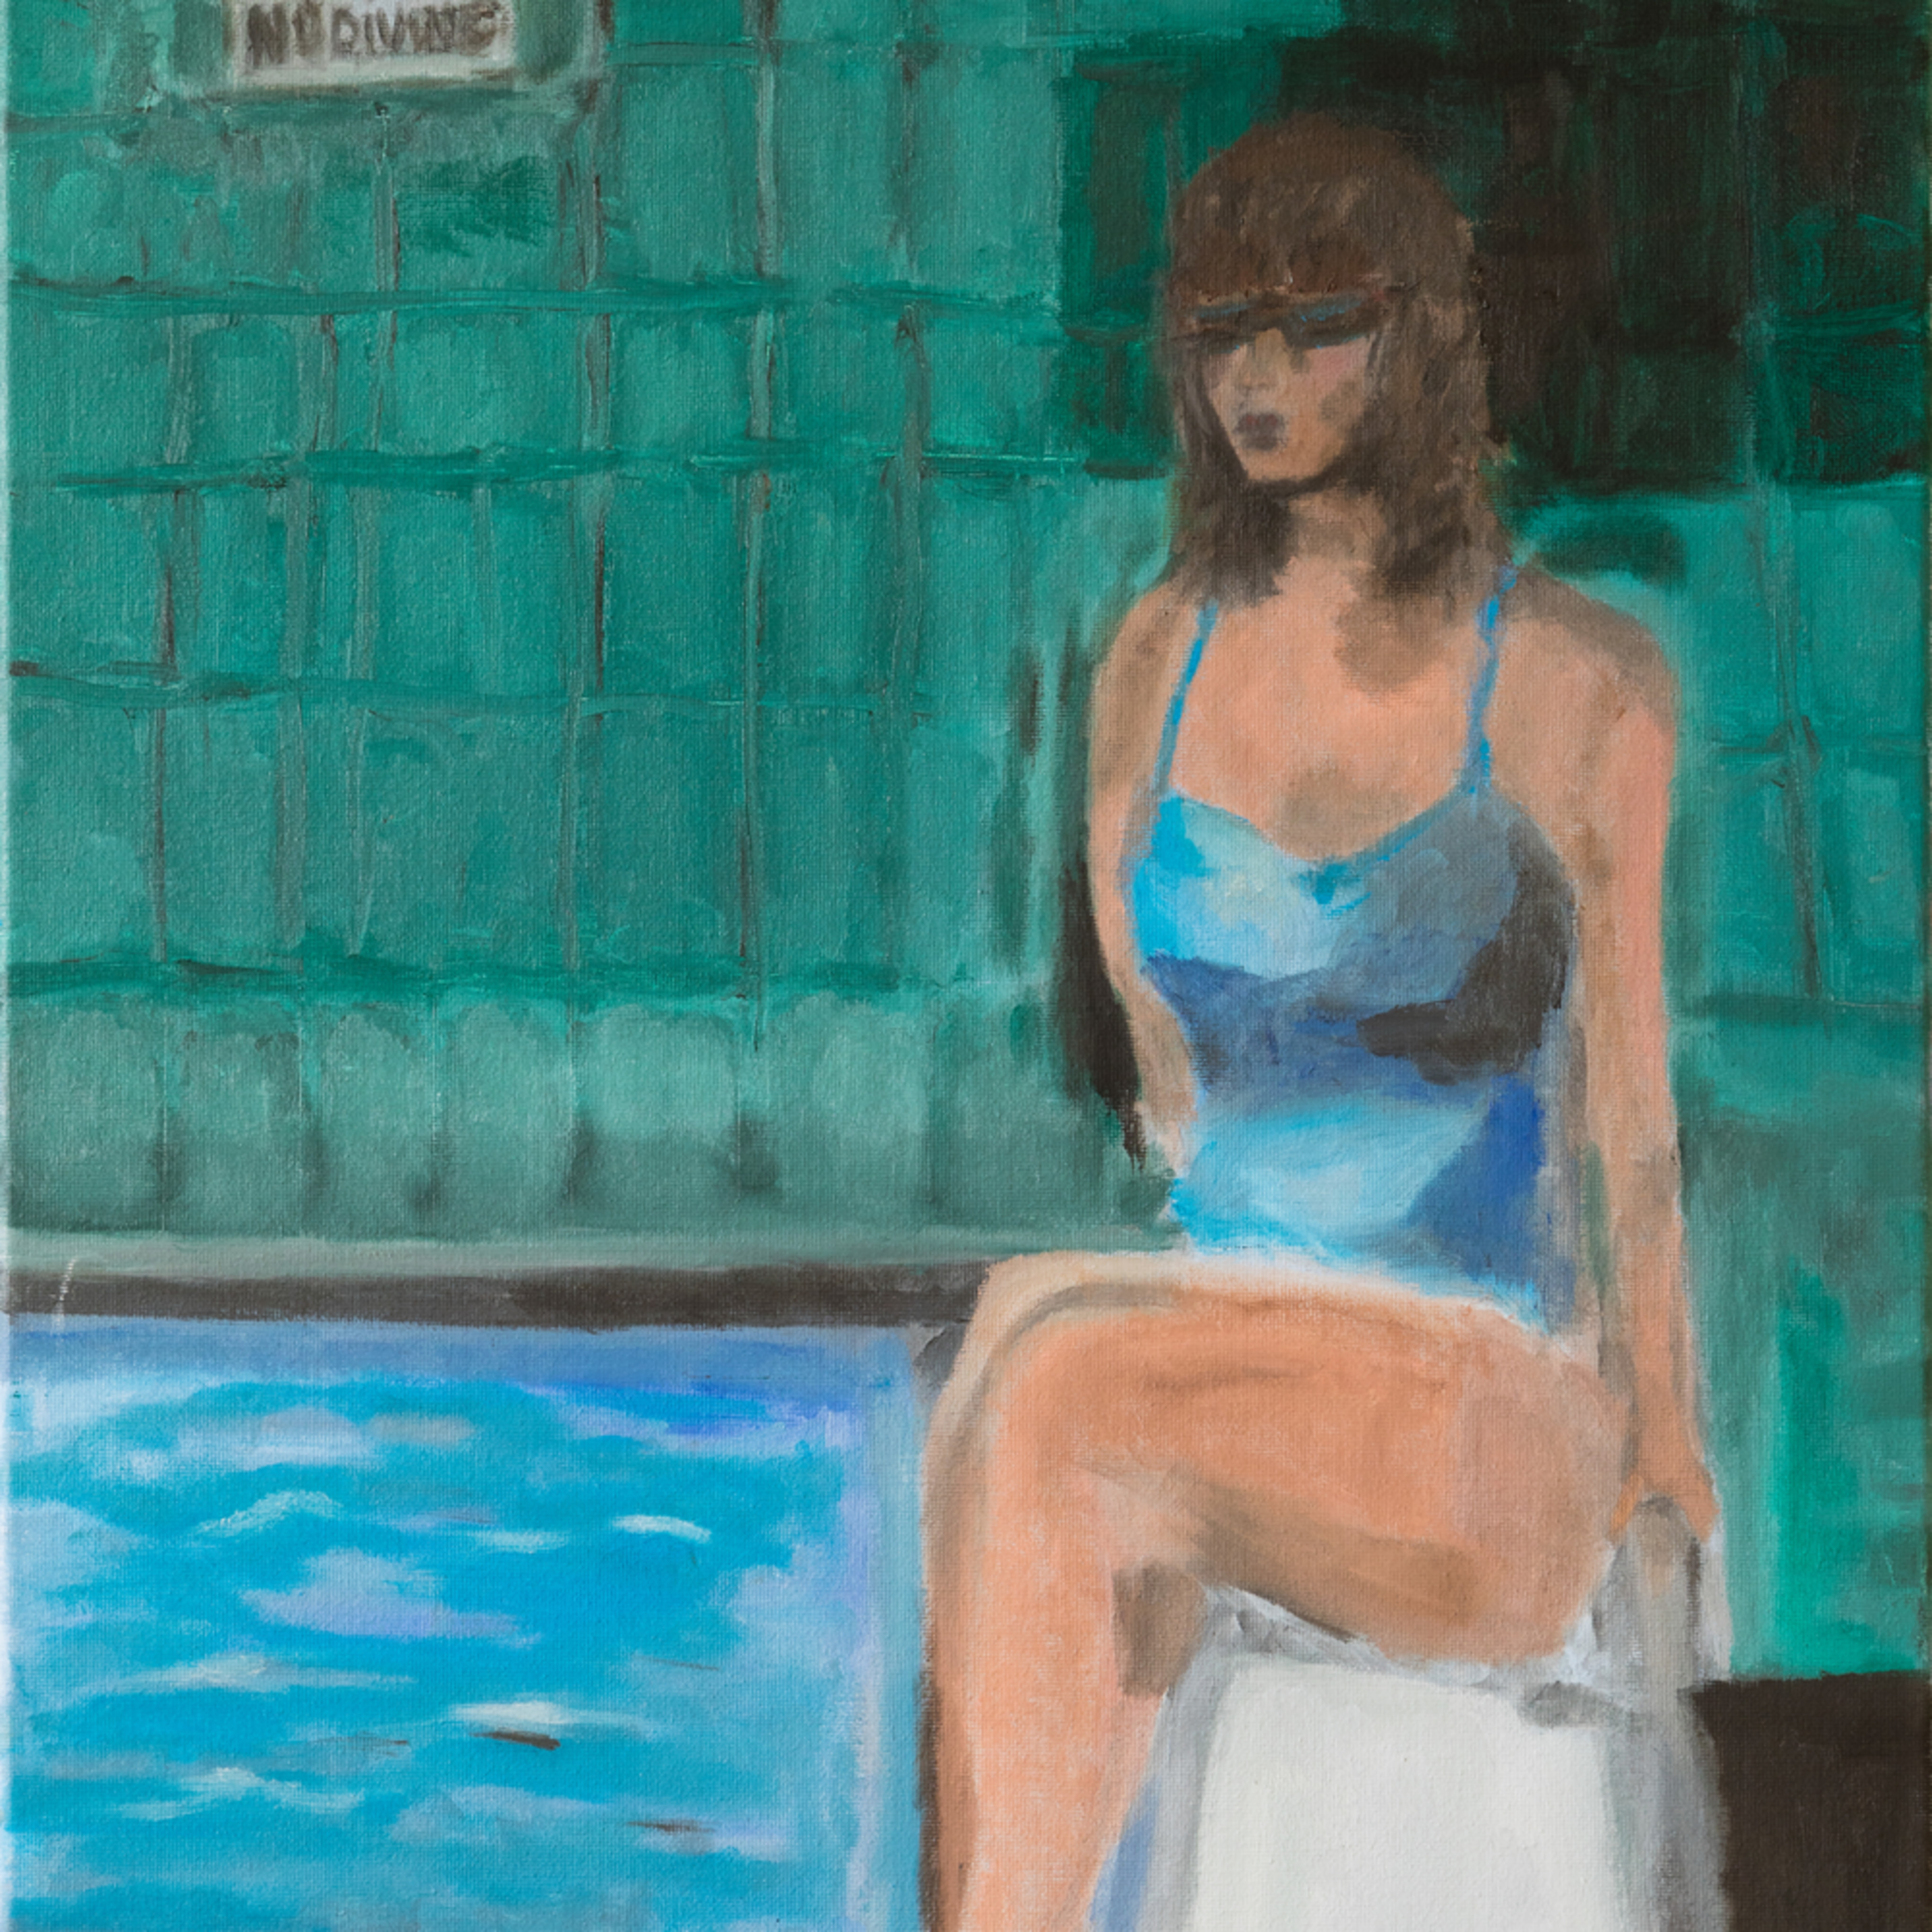 No diving   ane howard paintings 06 bowgwd